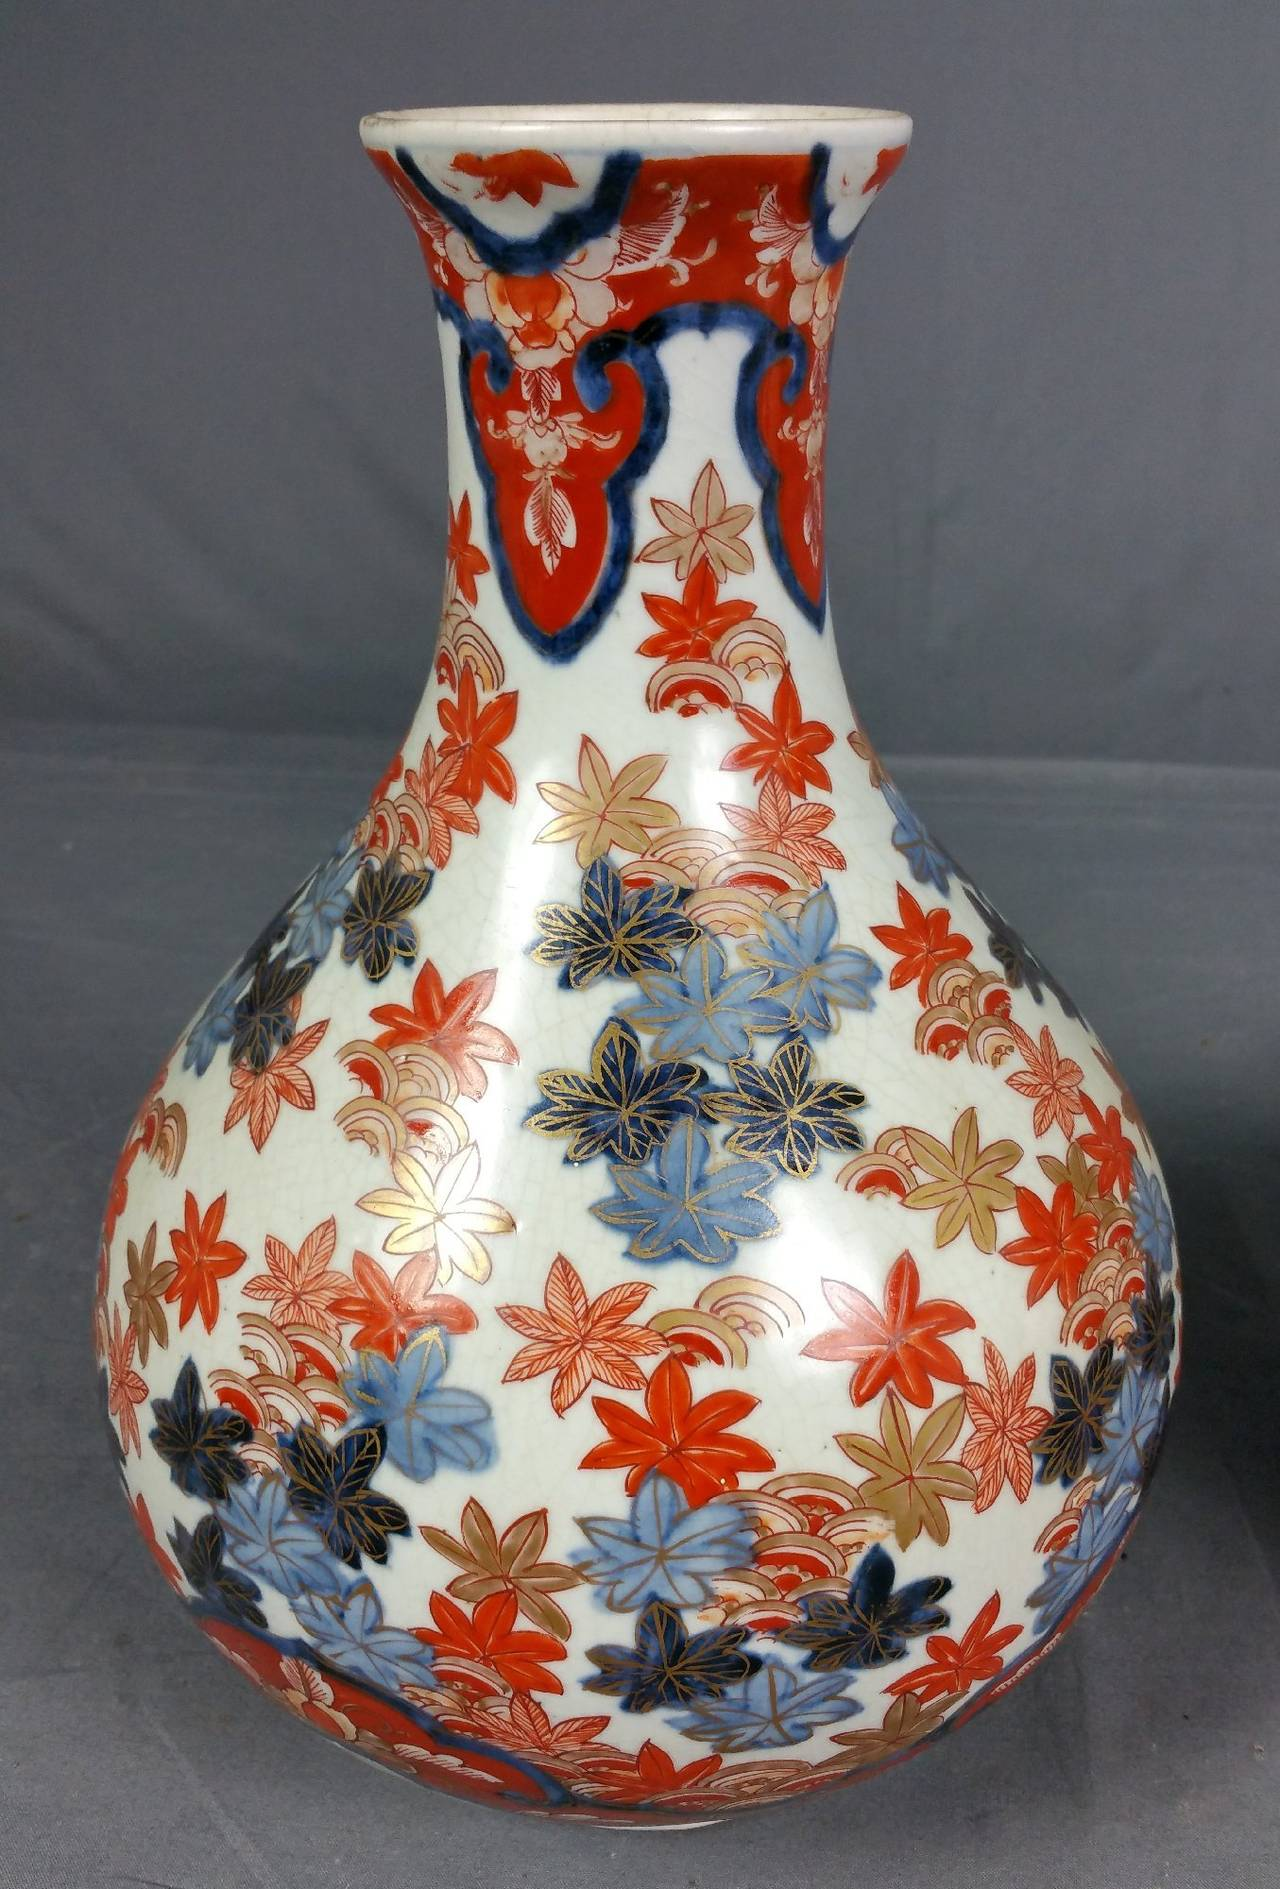 Pair of 19th century japanese imari pottery vases for sale at 1stdibs hand painted pair of 19th century japanese imari pottery vases for sale reviewsmspy